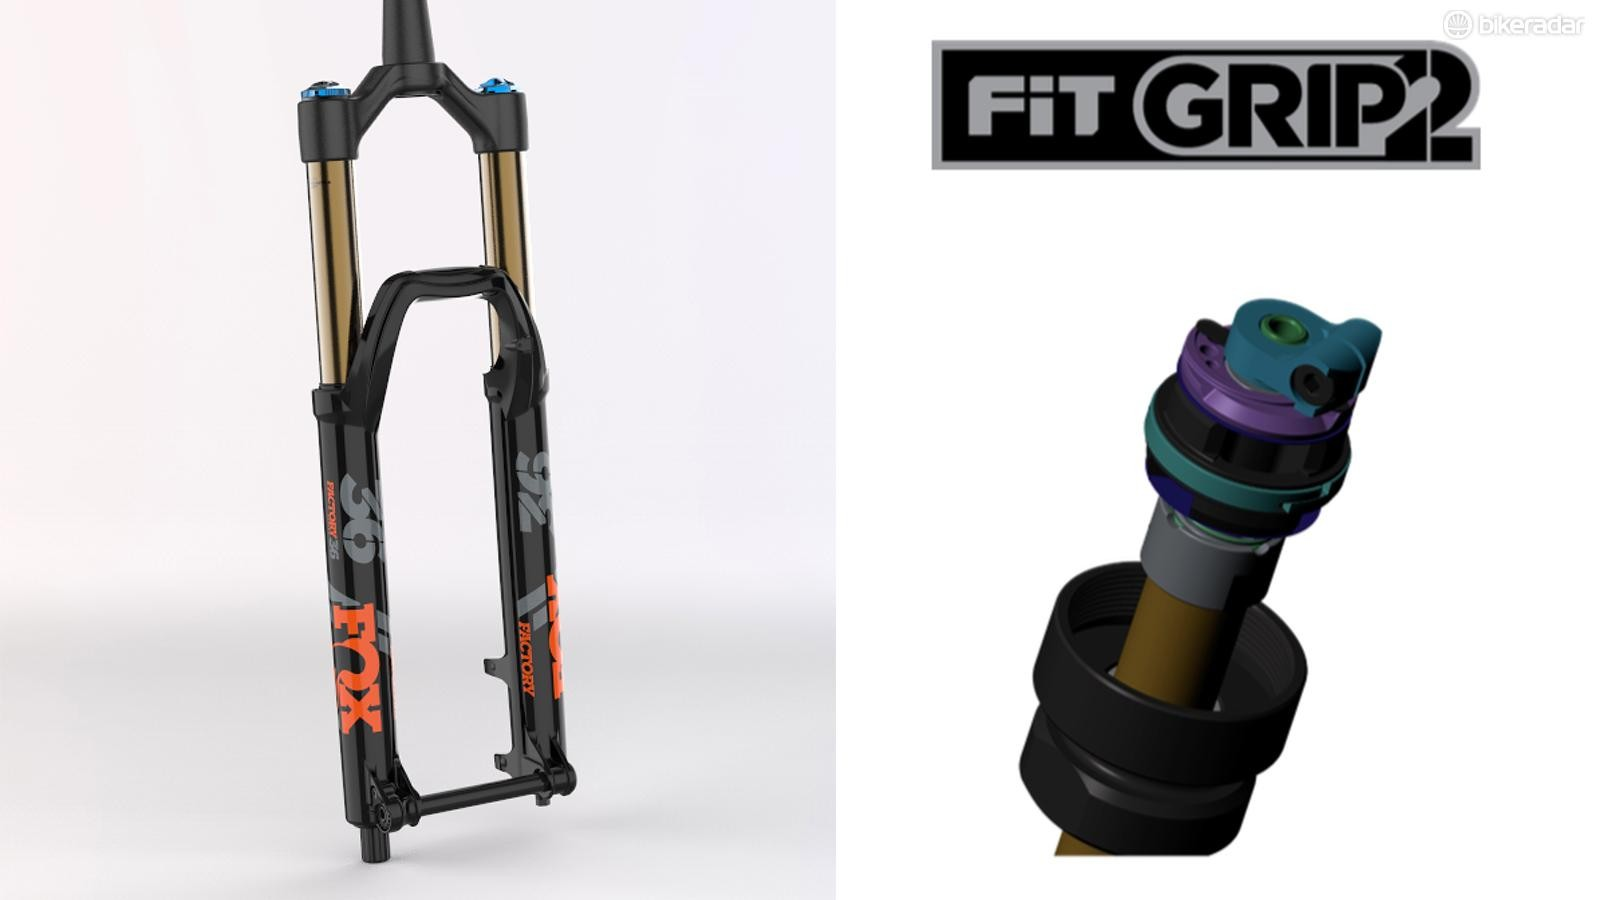 Fox model year 2019 suspension updates: what you need to know